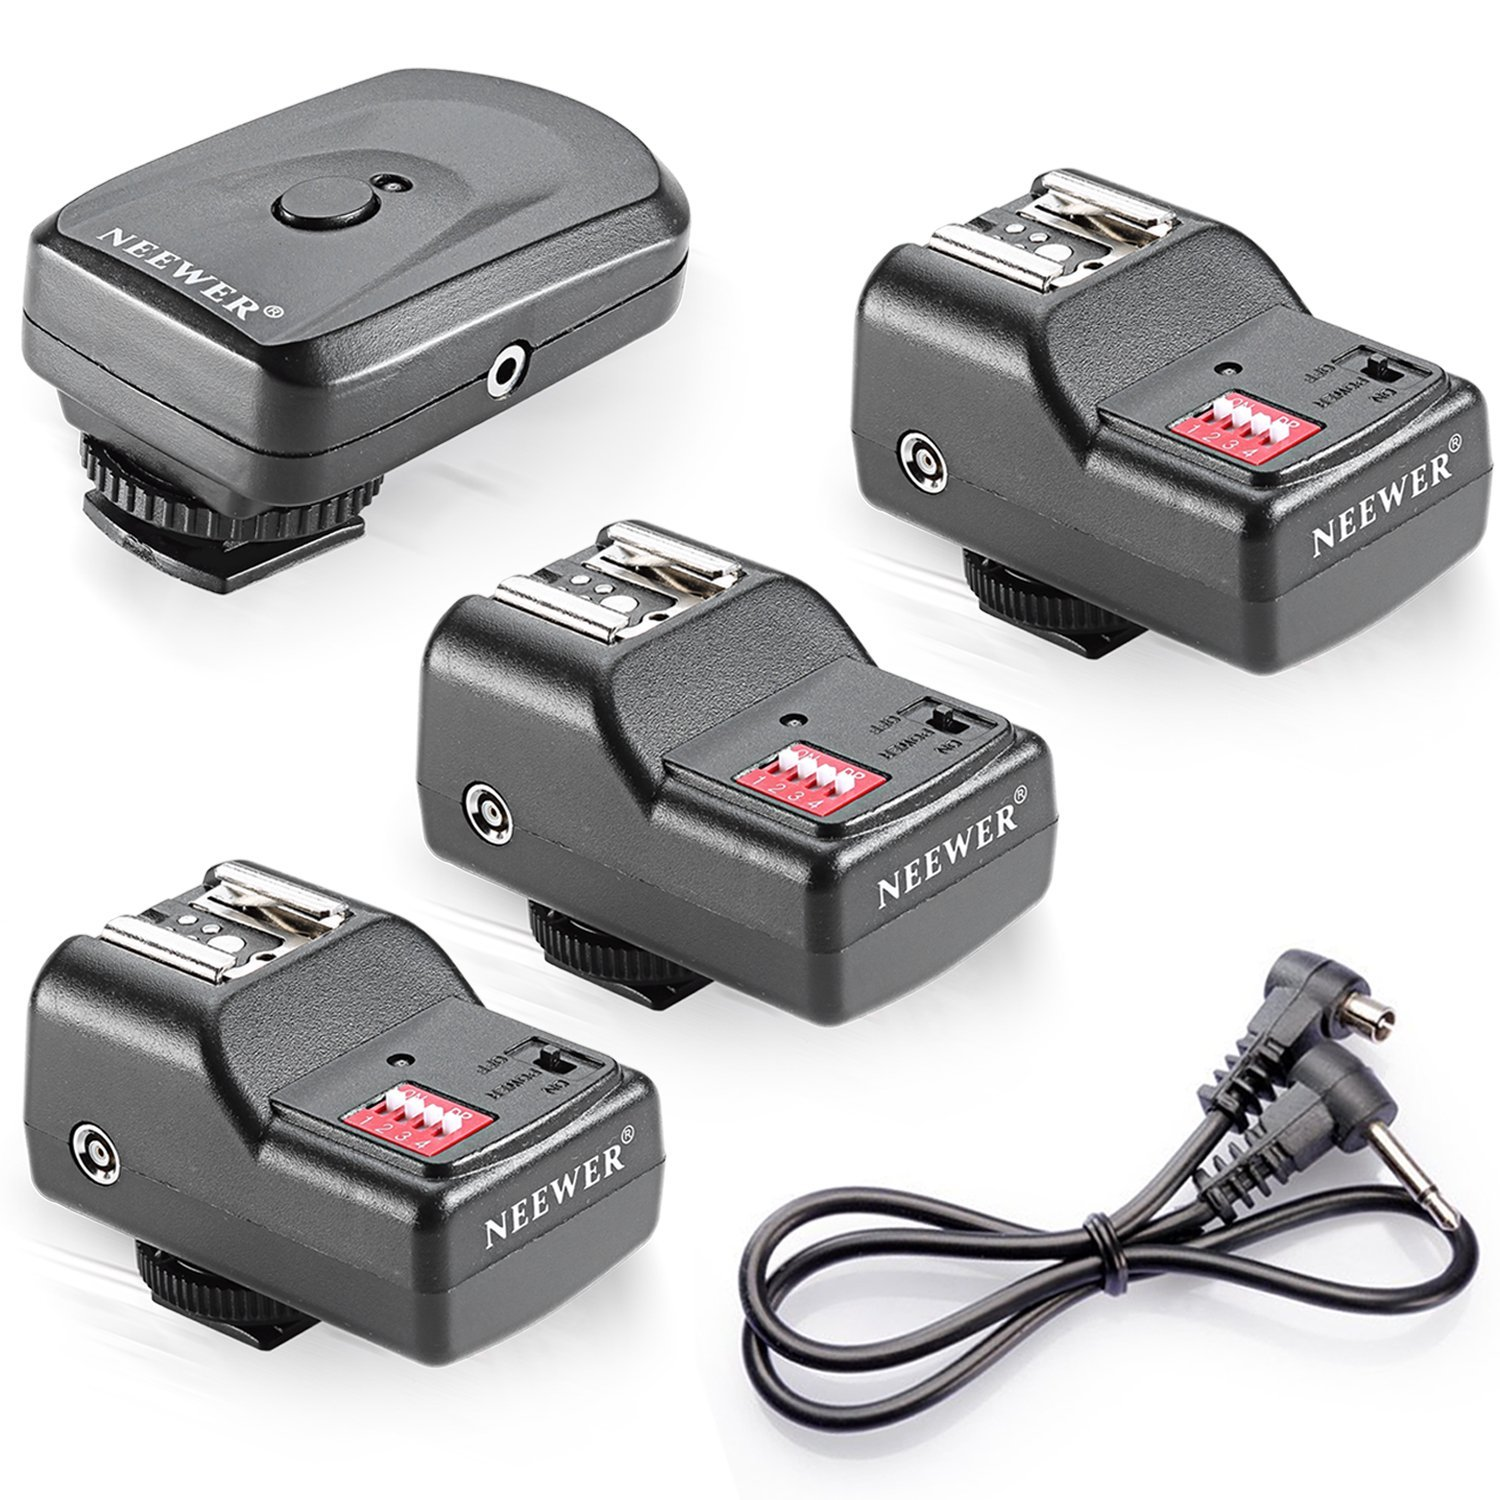 Neewer 16 Channel Wireless Flash para Canon, Nikon, Pentax